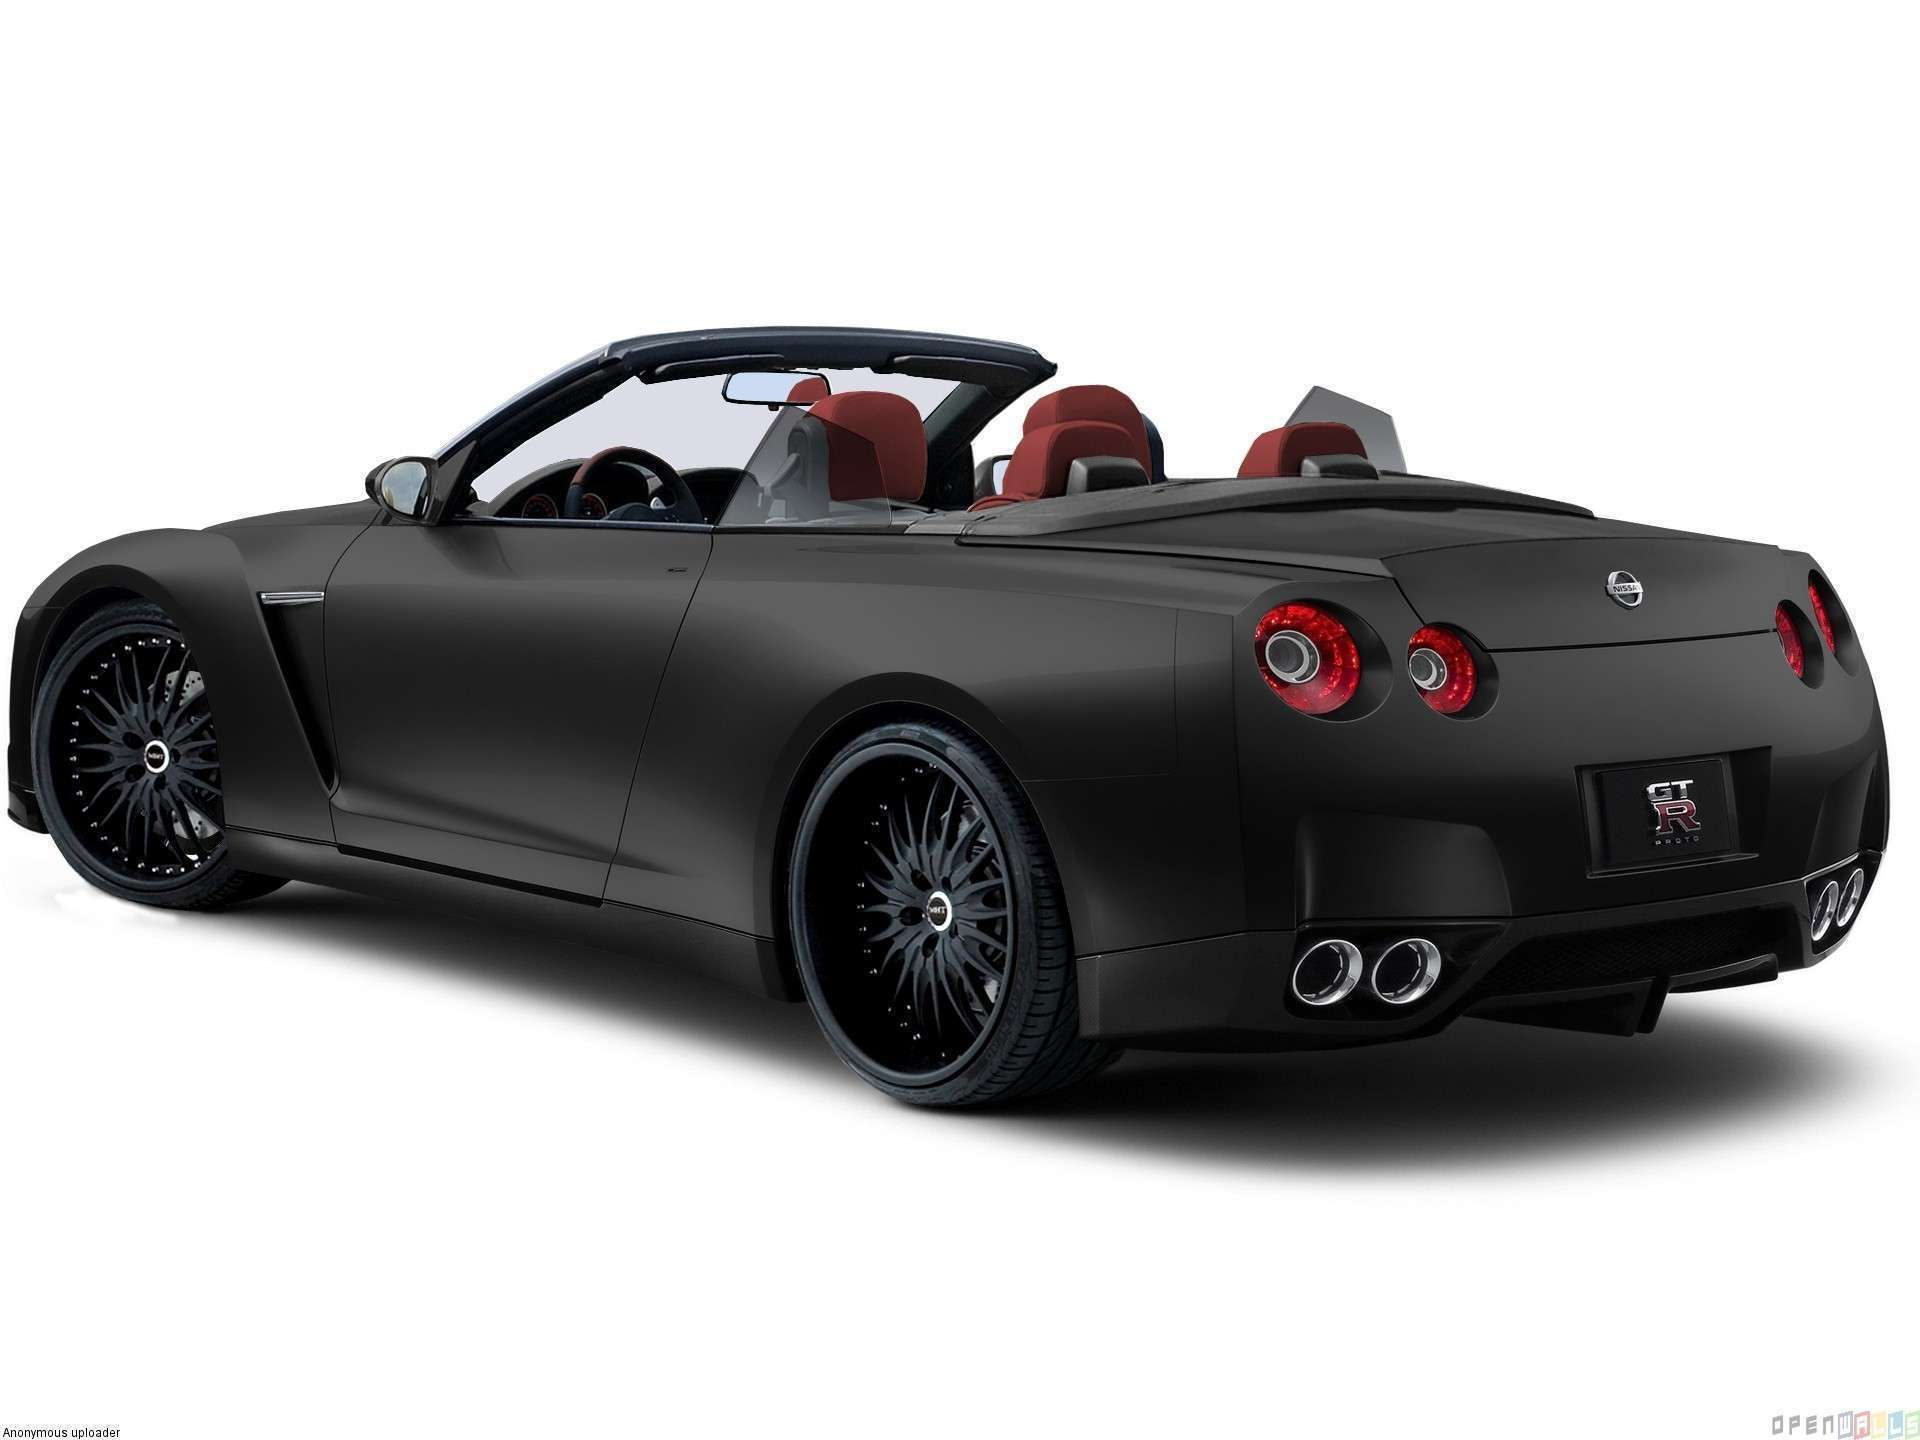 Nissan Gtr R35 Cabrio Hd Wallpapers Hd Car Wallpapers